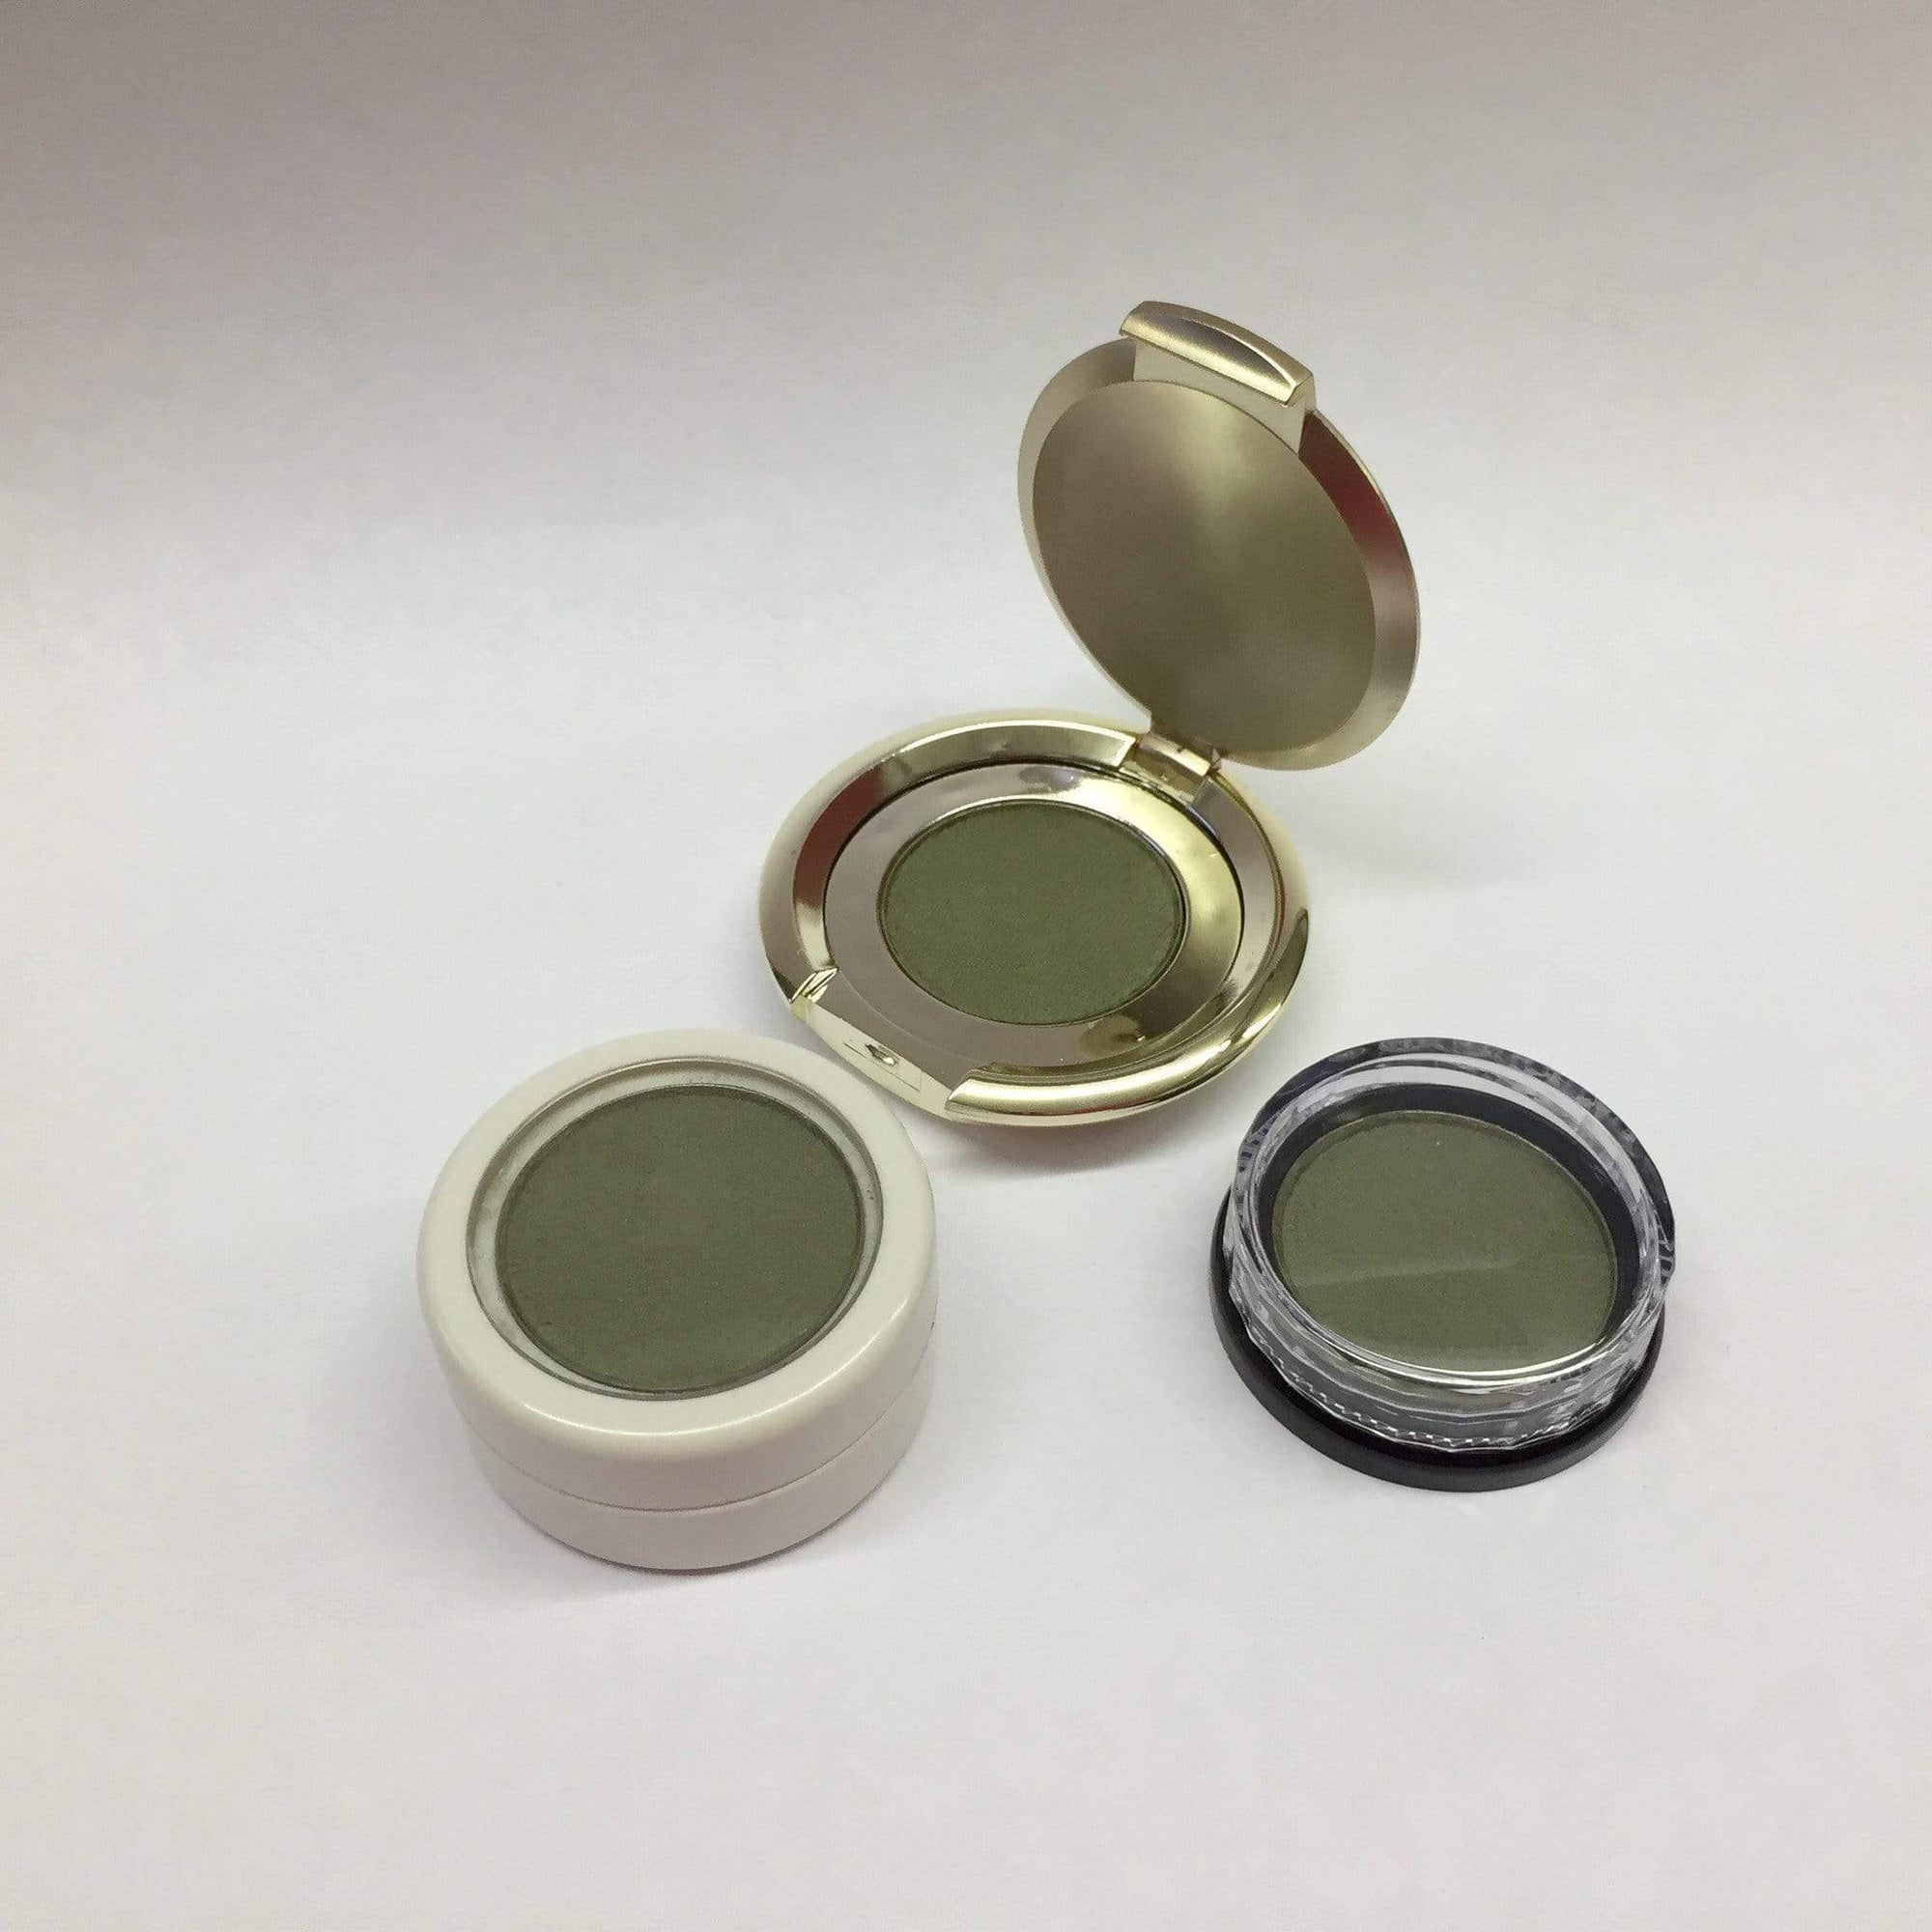 Danyel Cosmetics Eye Shadows Danyel Eye Shadows - Meadow Green (Old Packaging)